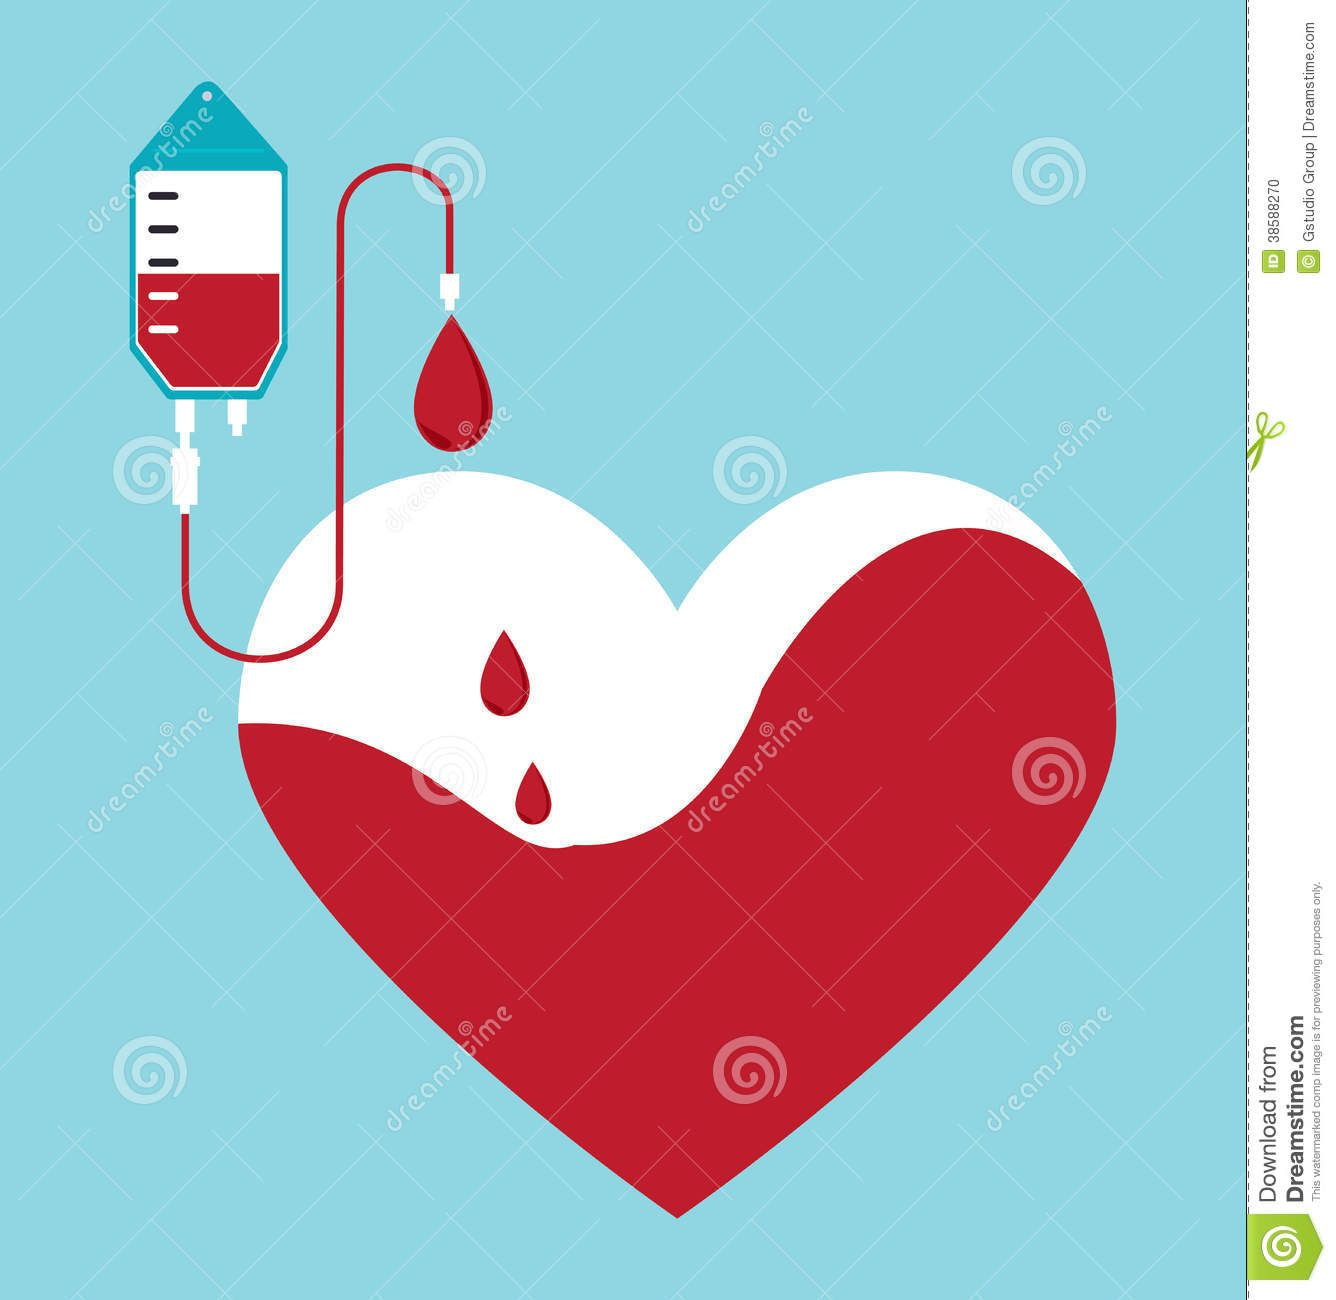 Poster design health - Donating Blood Posters Google Search